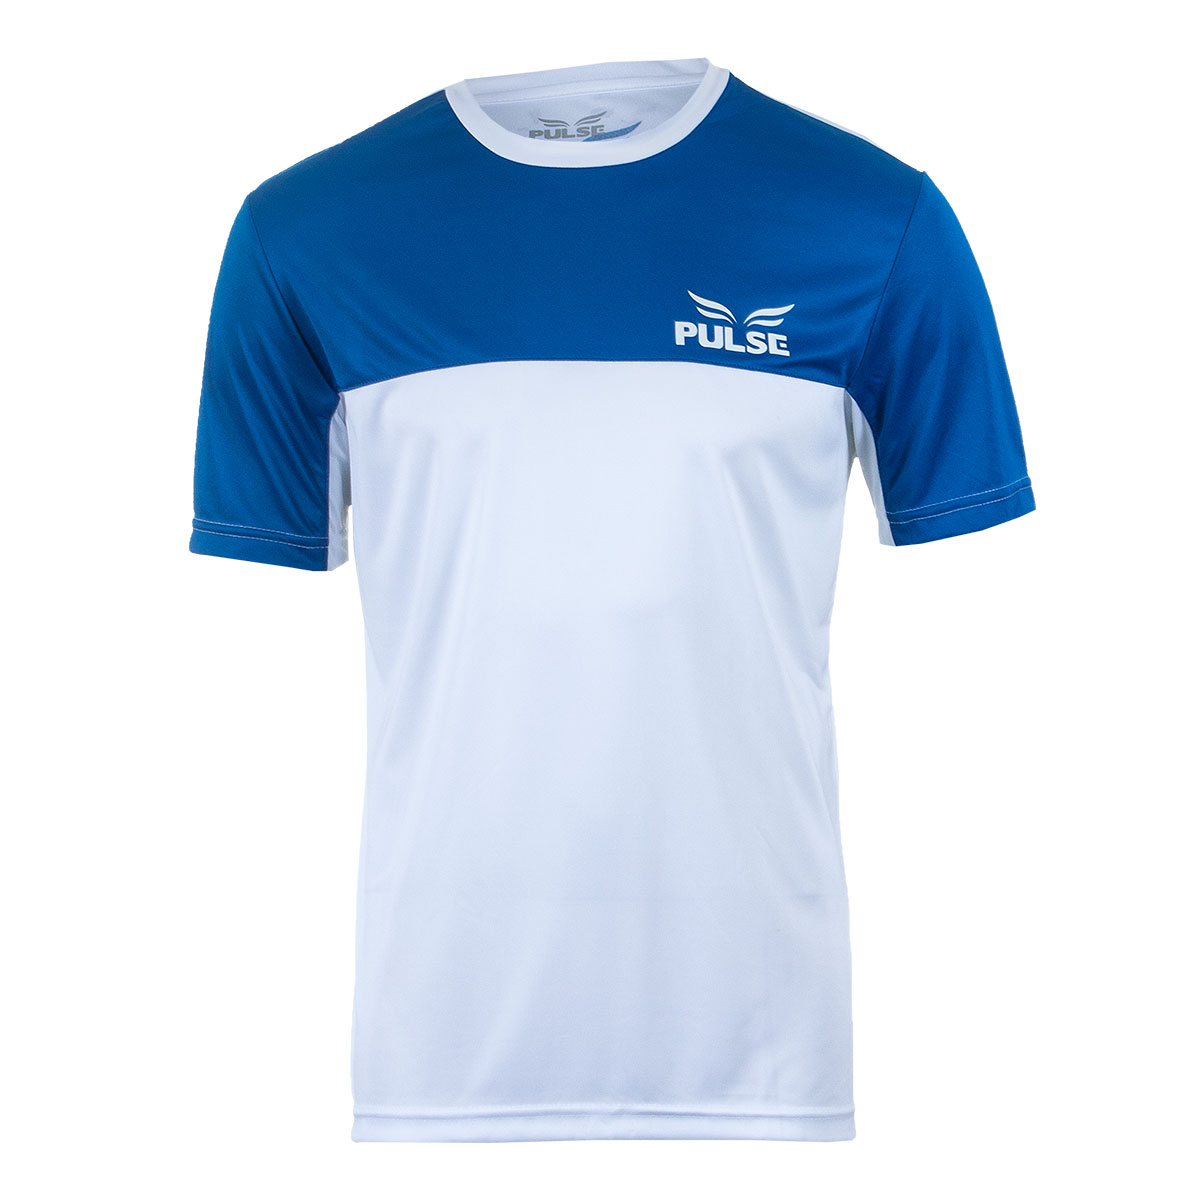 Camisa Masc. Pulse Sports Casual - Branco/Azul